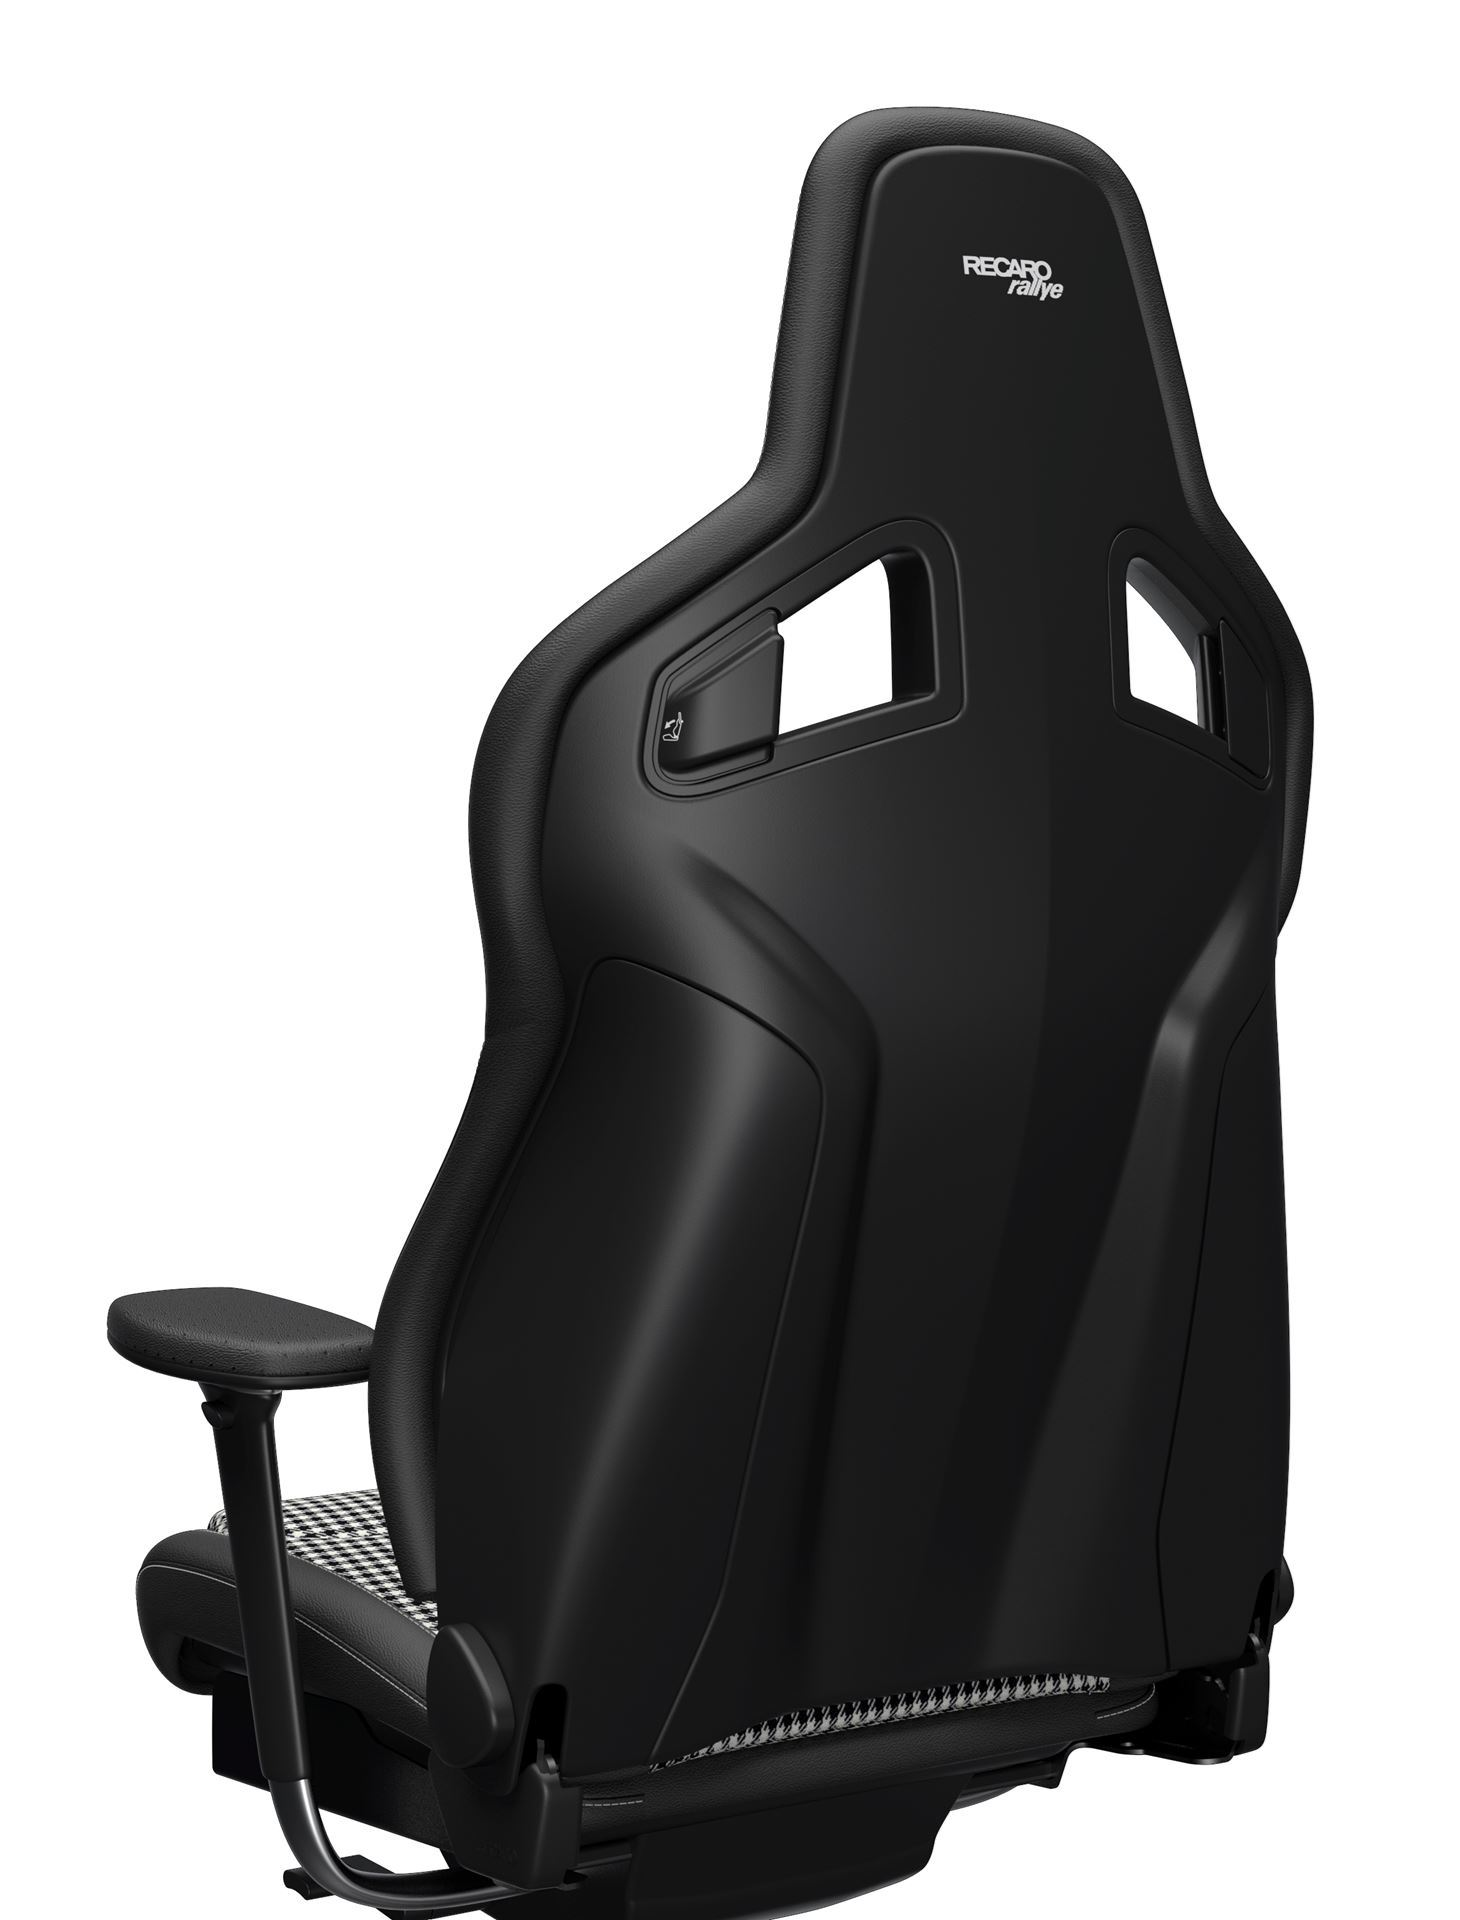 recaro office chair uk phil and teds me too recall capital seating vision gt